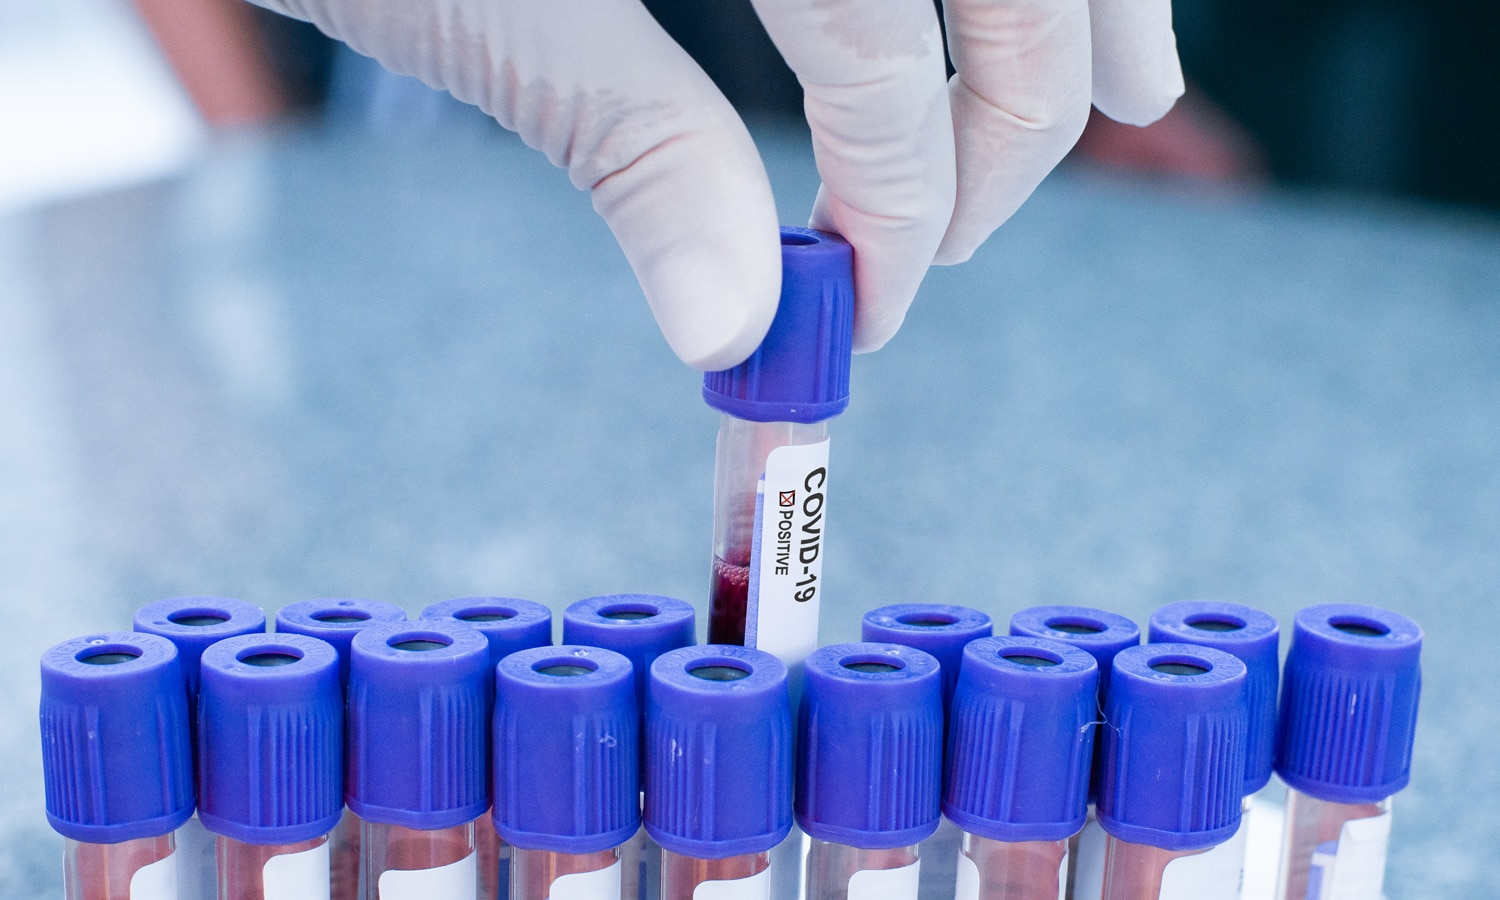 FDA Authorizes First Next Generation Sequencing Test For Diagnosing COVID-19